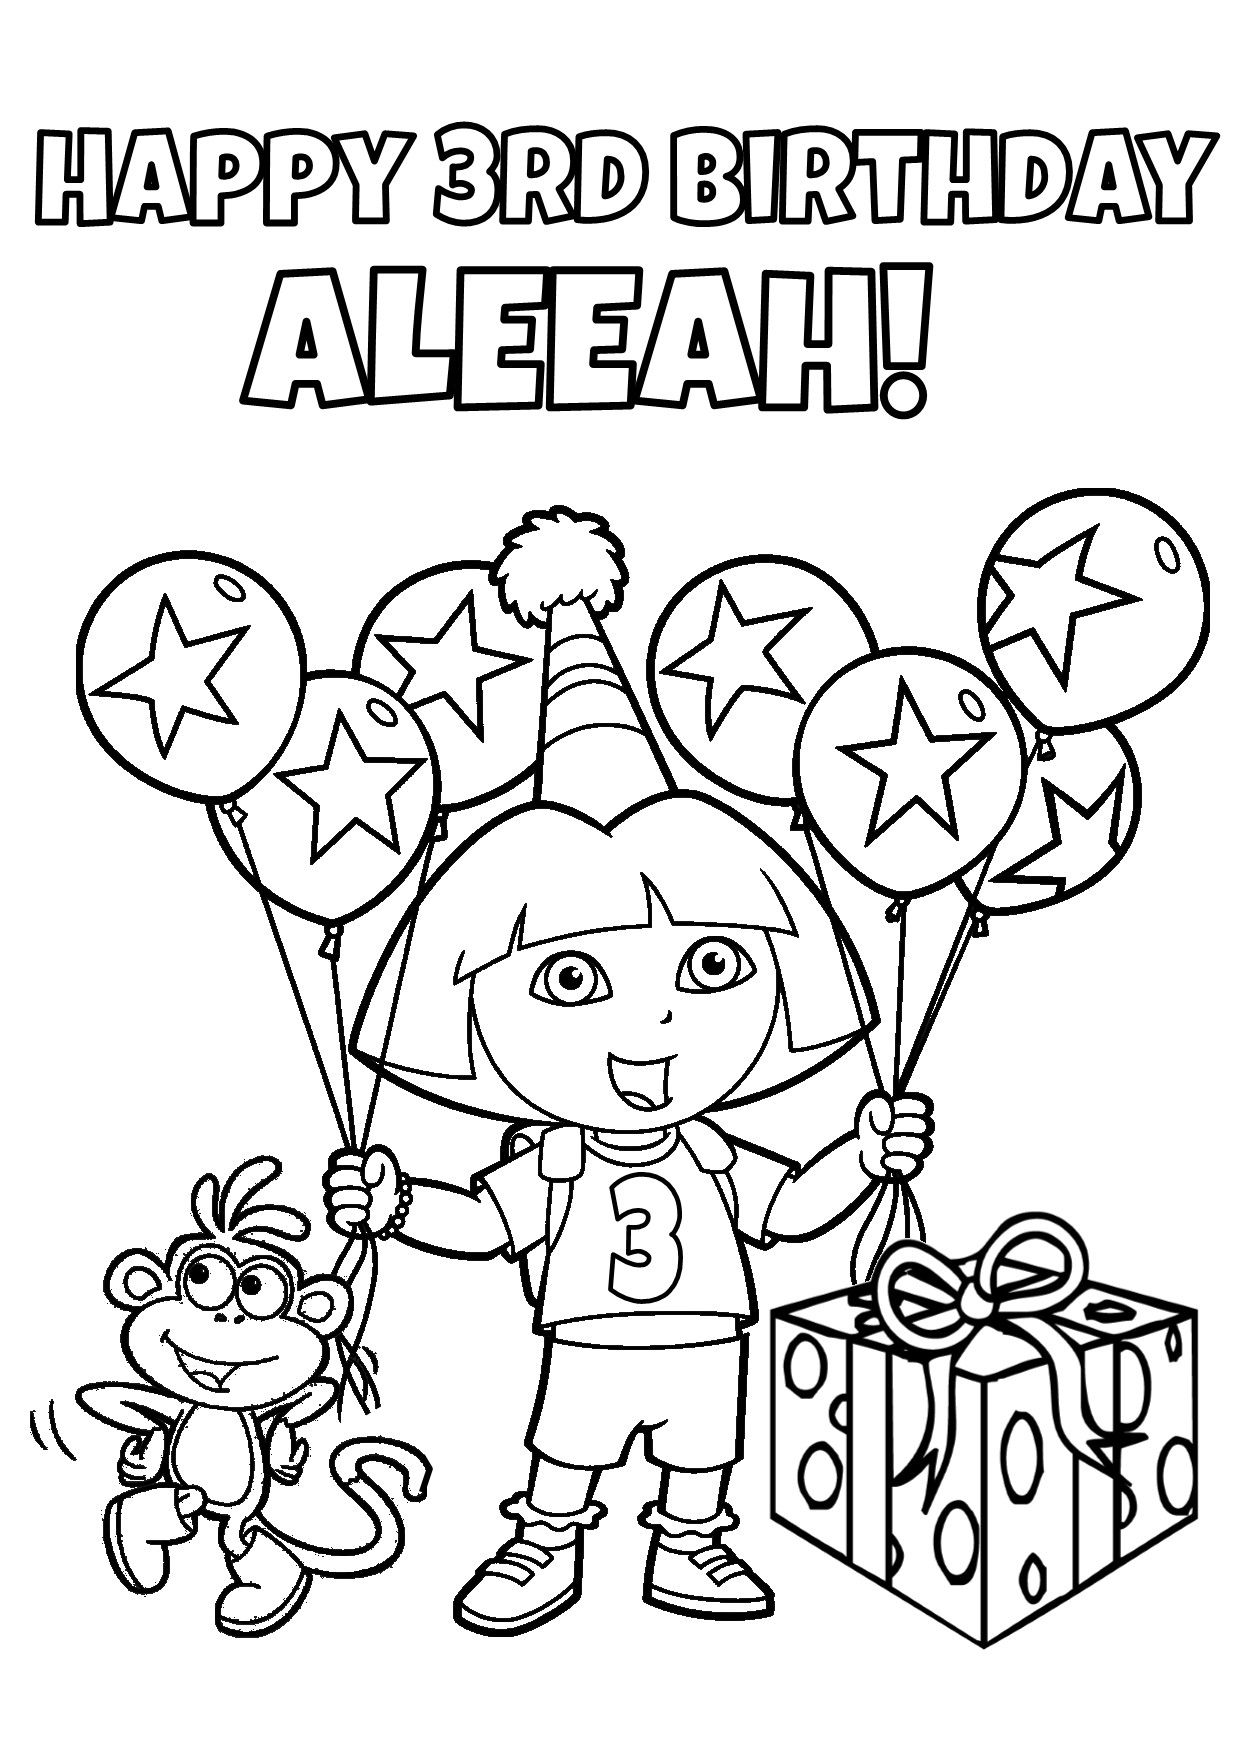 Diy Dora Birthday Party Games Unique Original And Fun Explorer Birthday Party Birthday Coloring Pages Happy Birthday Coloring Pages